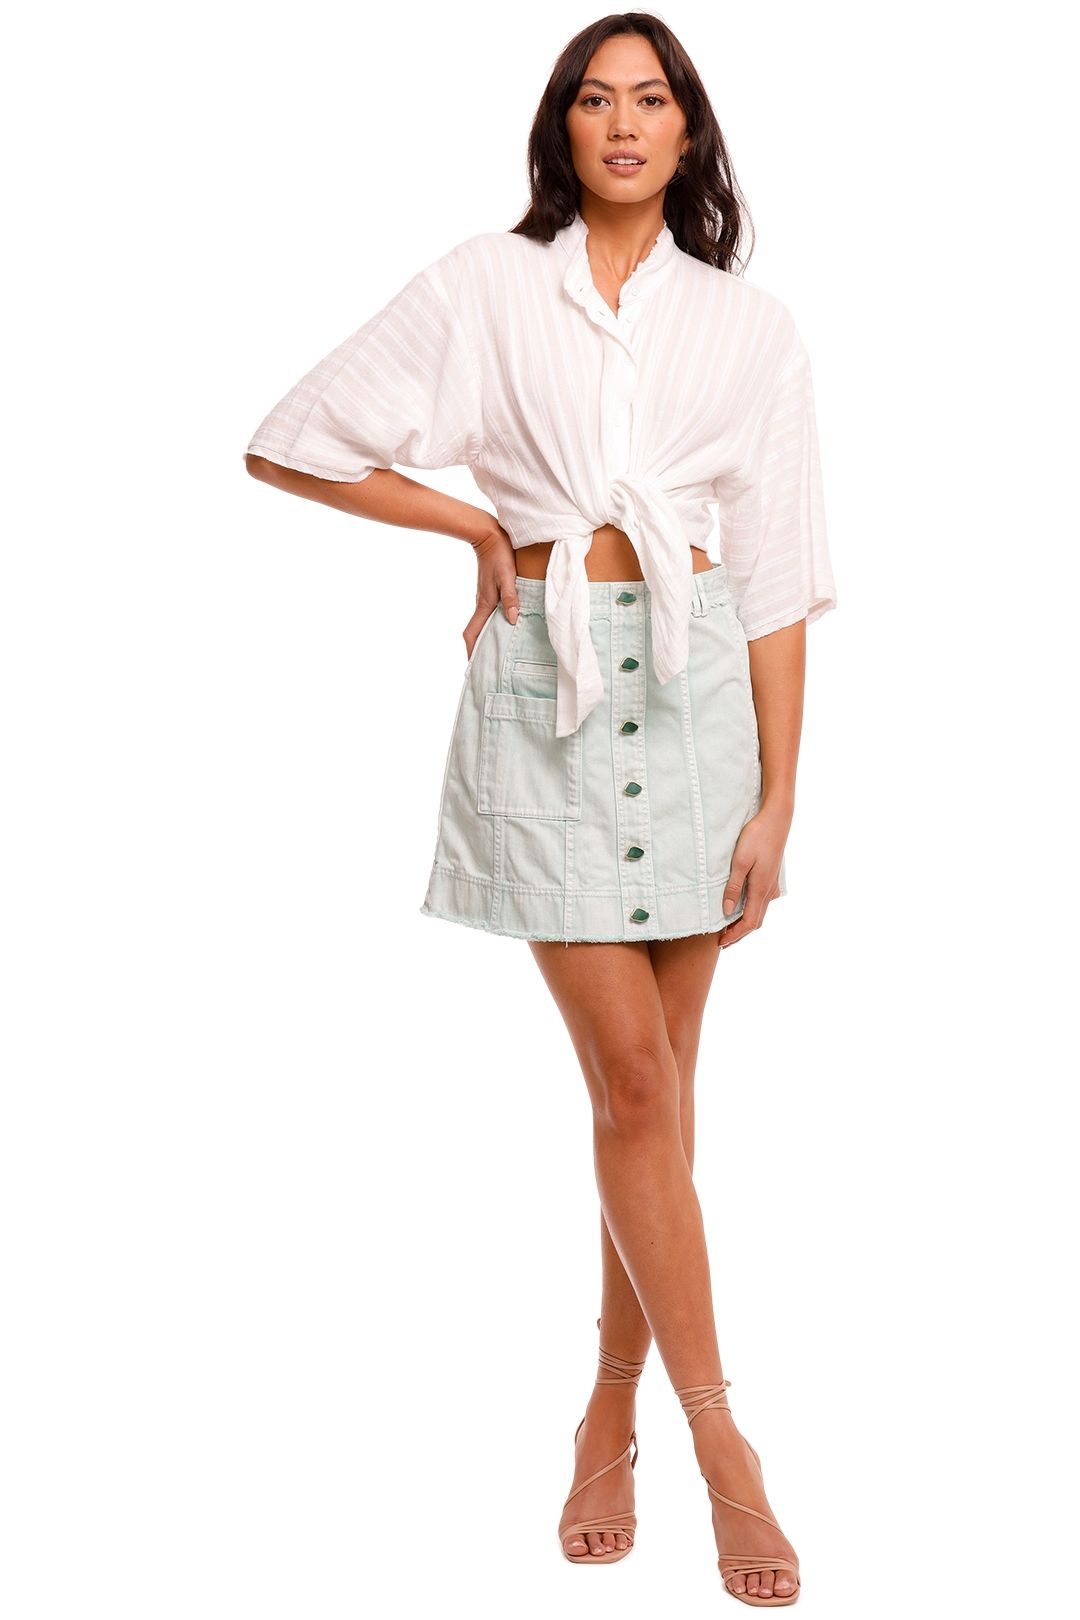 Bec and Bridge Provincial Shirt Ivory relaxed